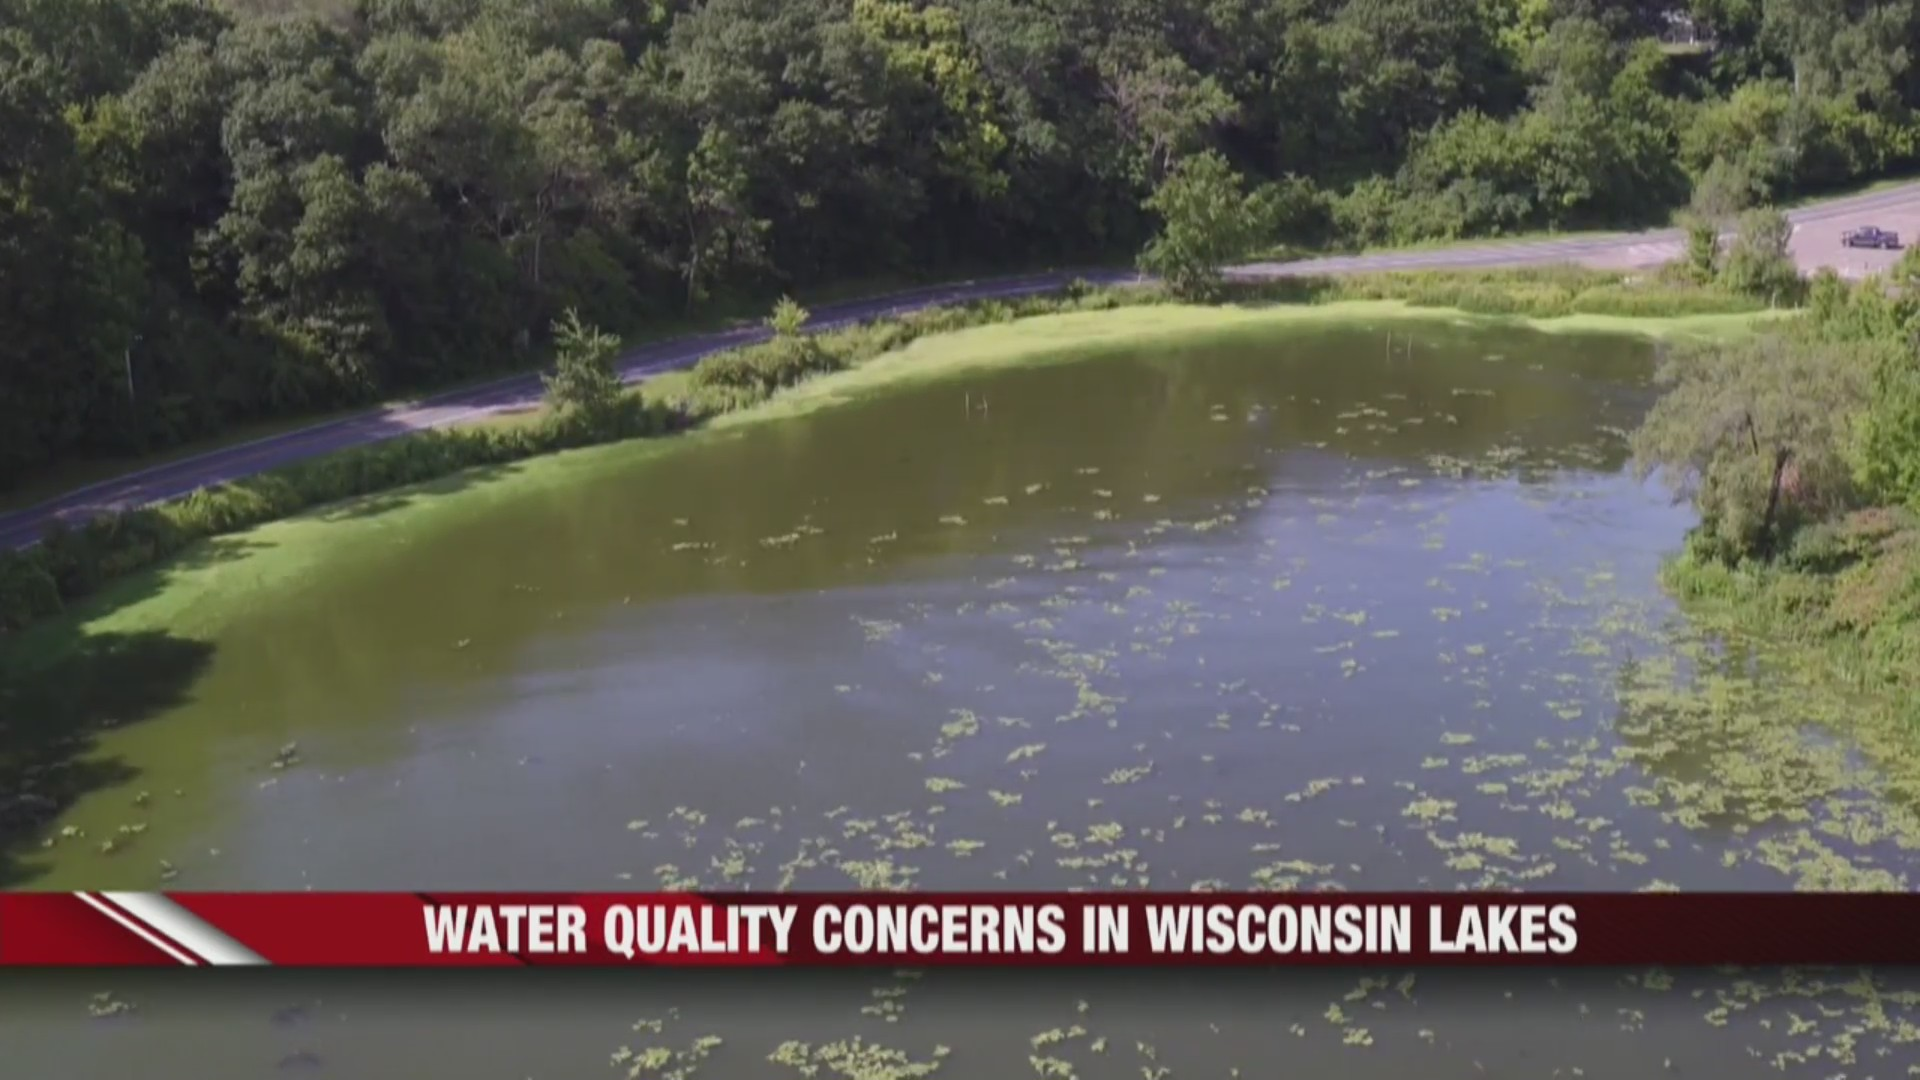 WI Lake Water Quality